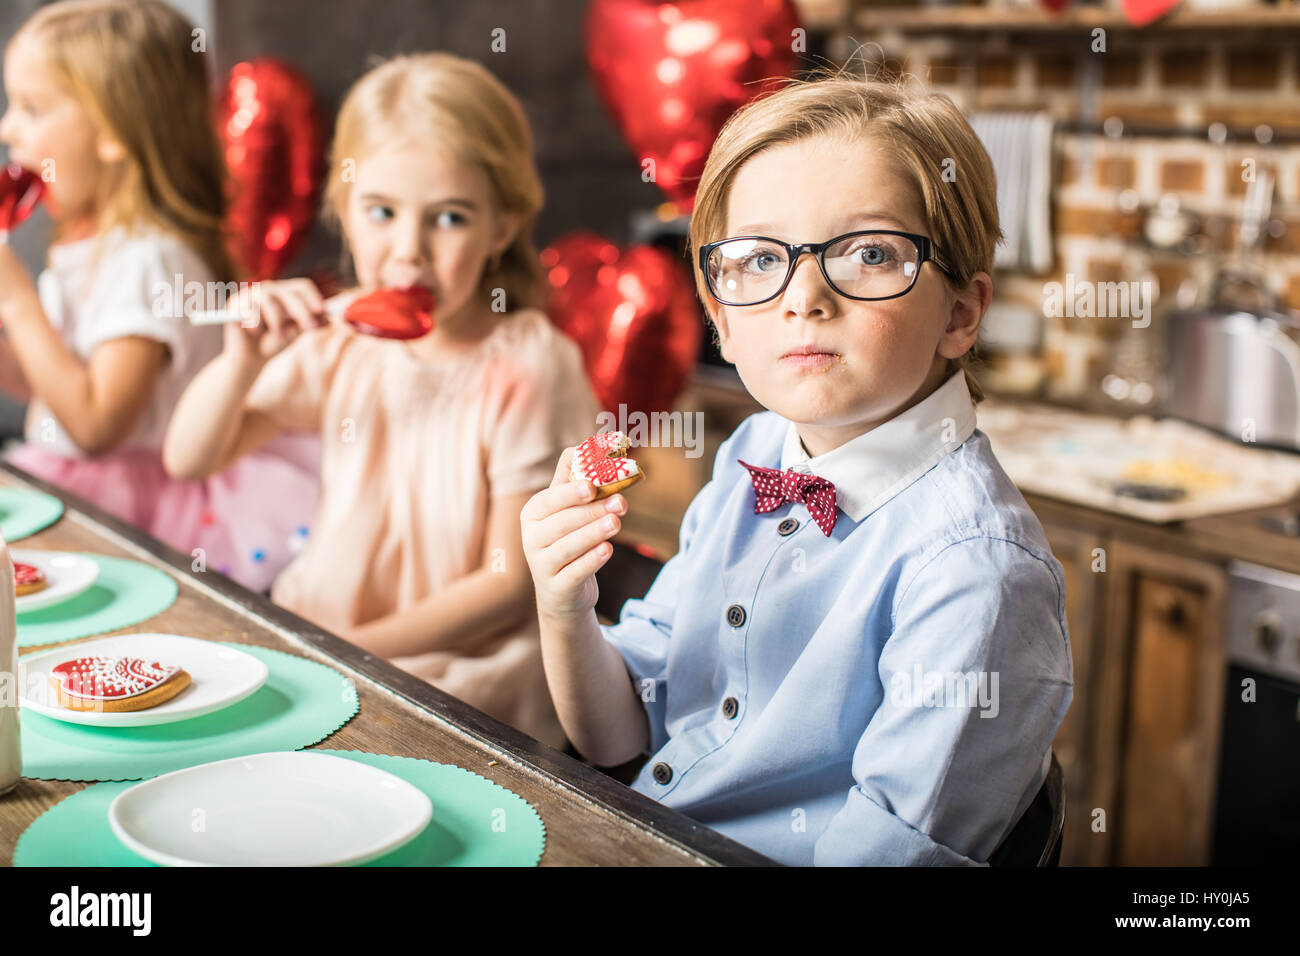 Stylish boy in eyeglasses eating cookie at birthday party - Stock Image